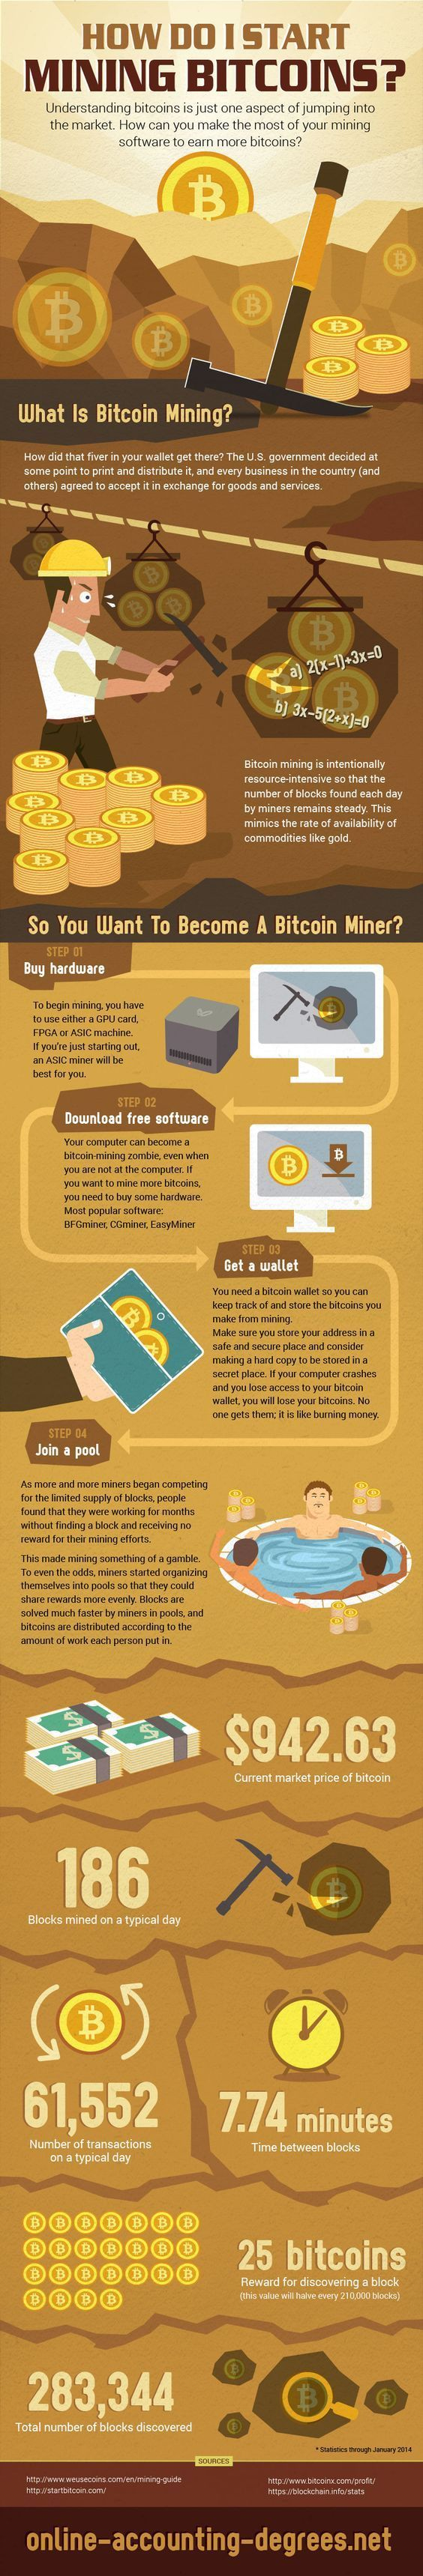 How Do I Start Mining Bitcoins? #infographic #bitcoin #crypto #cryptocurrency #money #investing #makemoney #picture #cool #tech #geeky #technology #blockchain #future